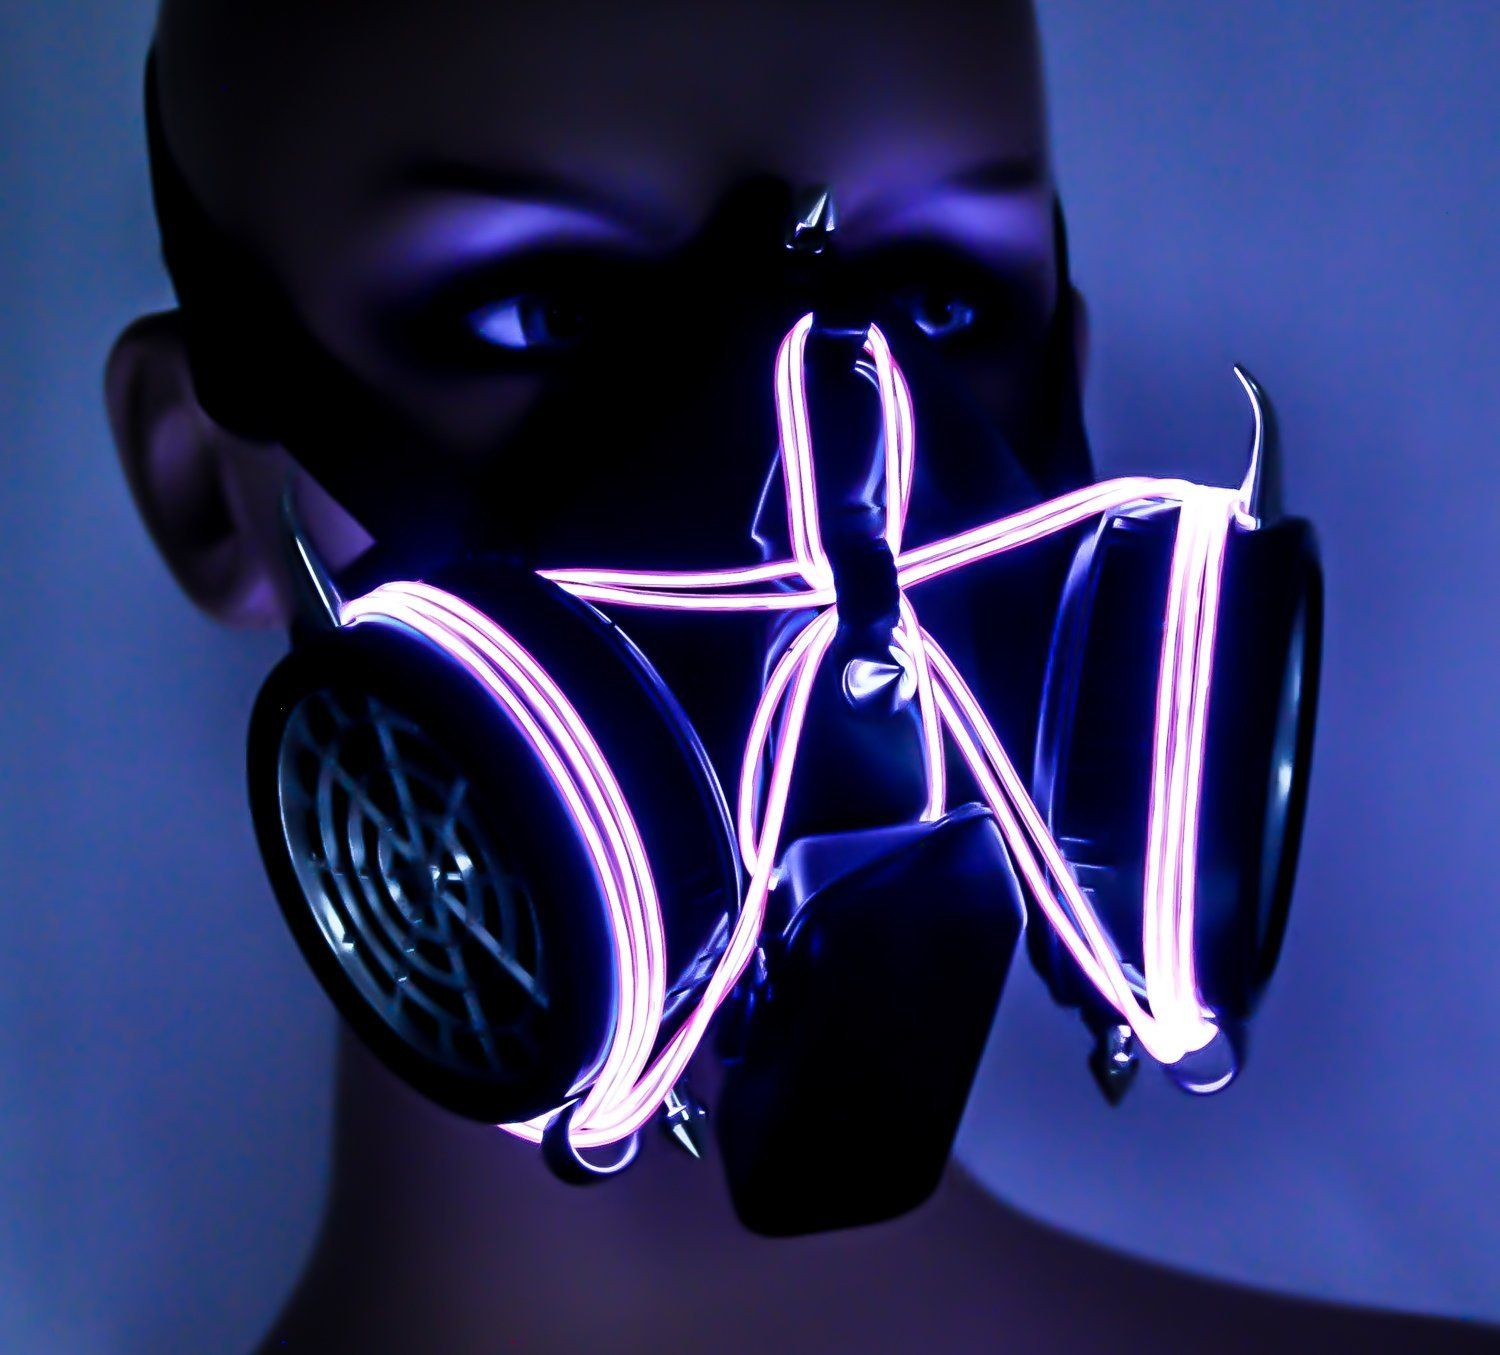 This seriously cool rave mask with respirator looks simply stunning this seriously cool rave mask with respirator looks simply stunning httpraveswearcyber punk rave mask rave edm plur hot dance party mask voltagebd Images